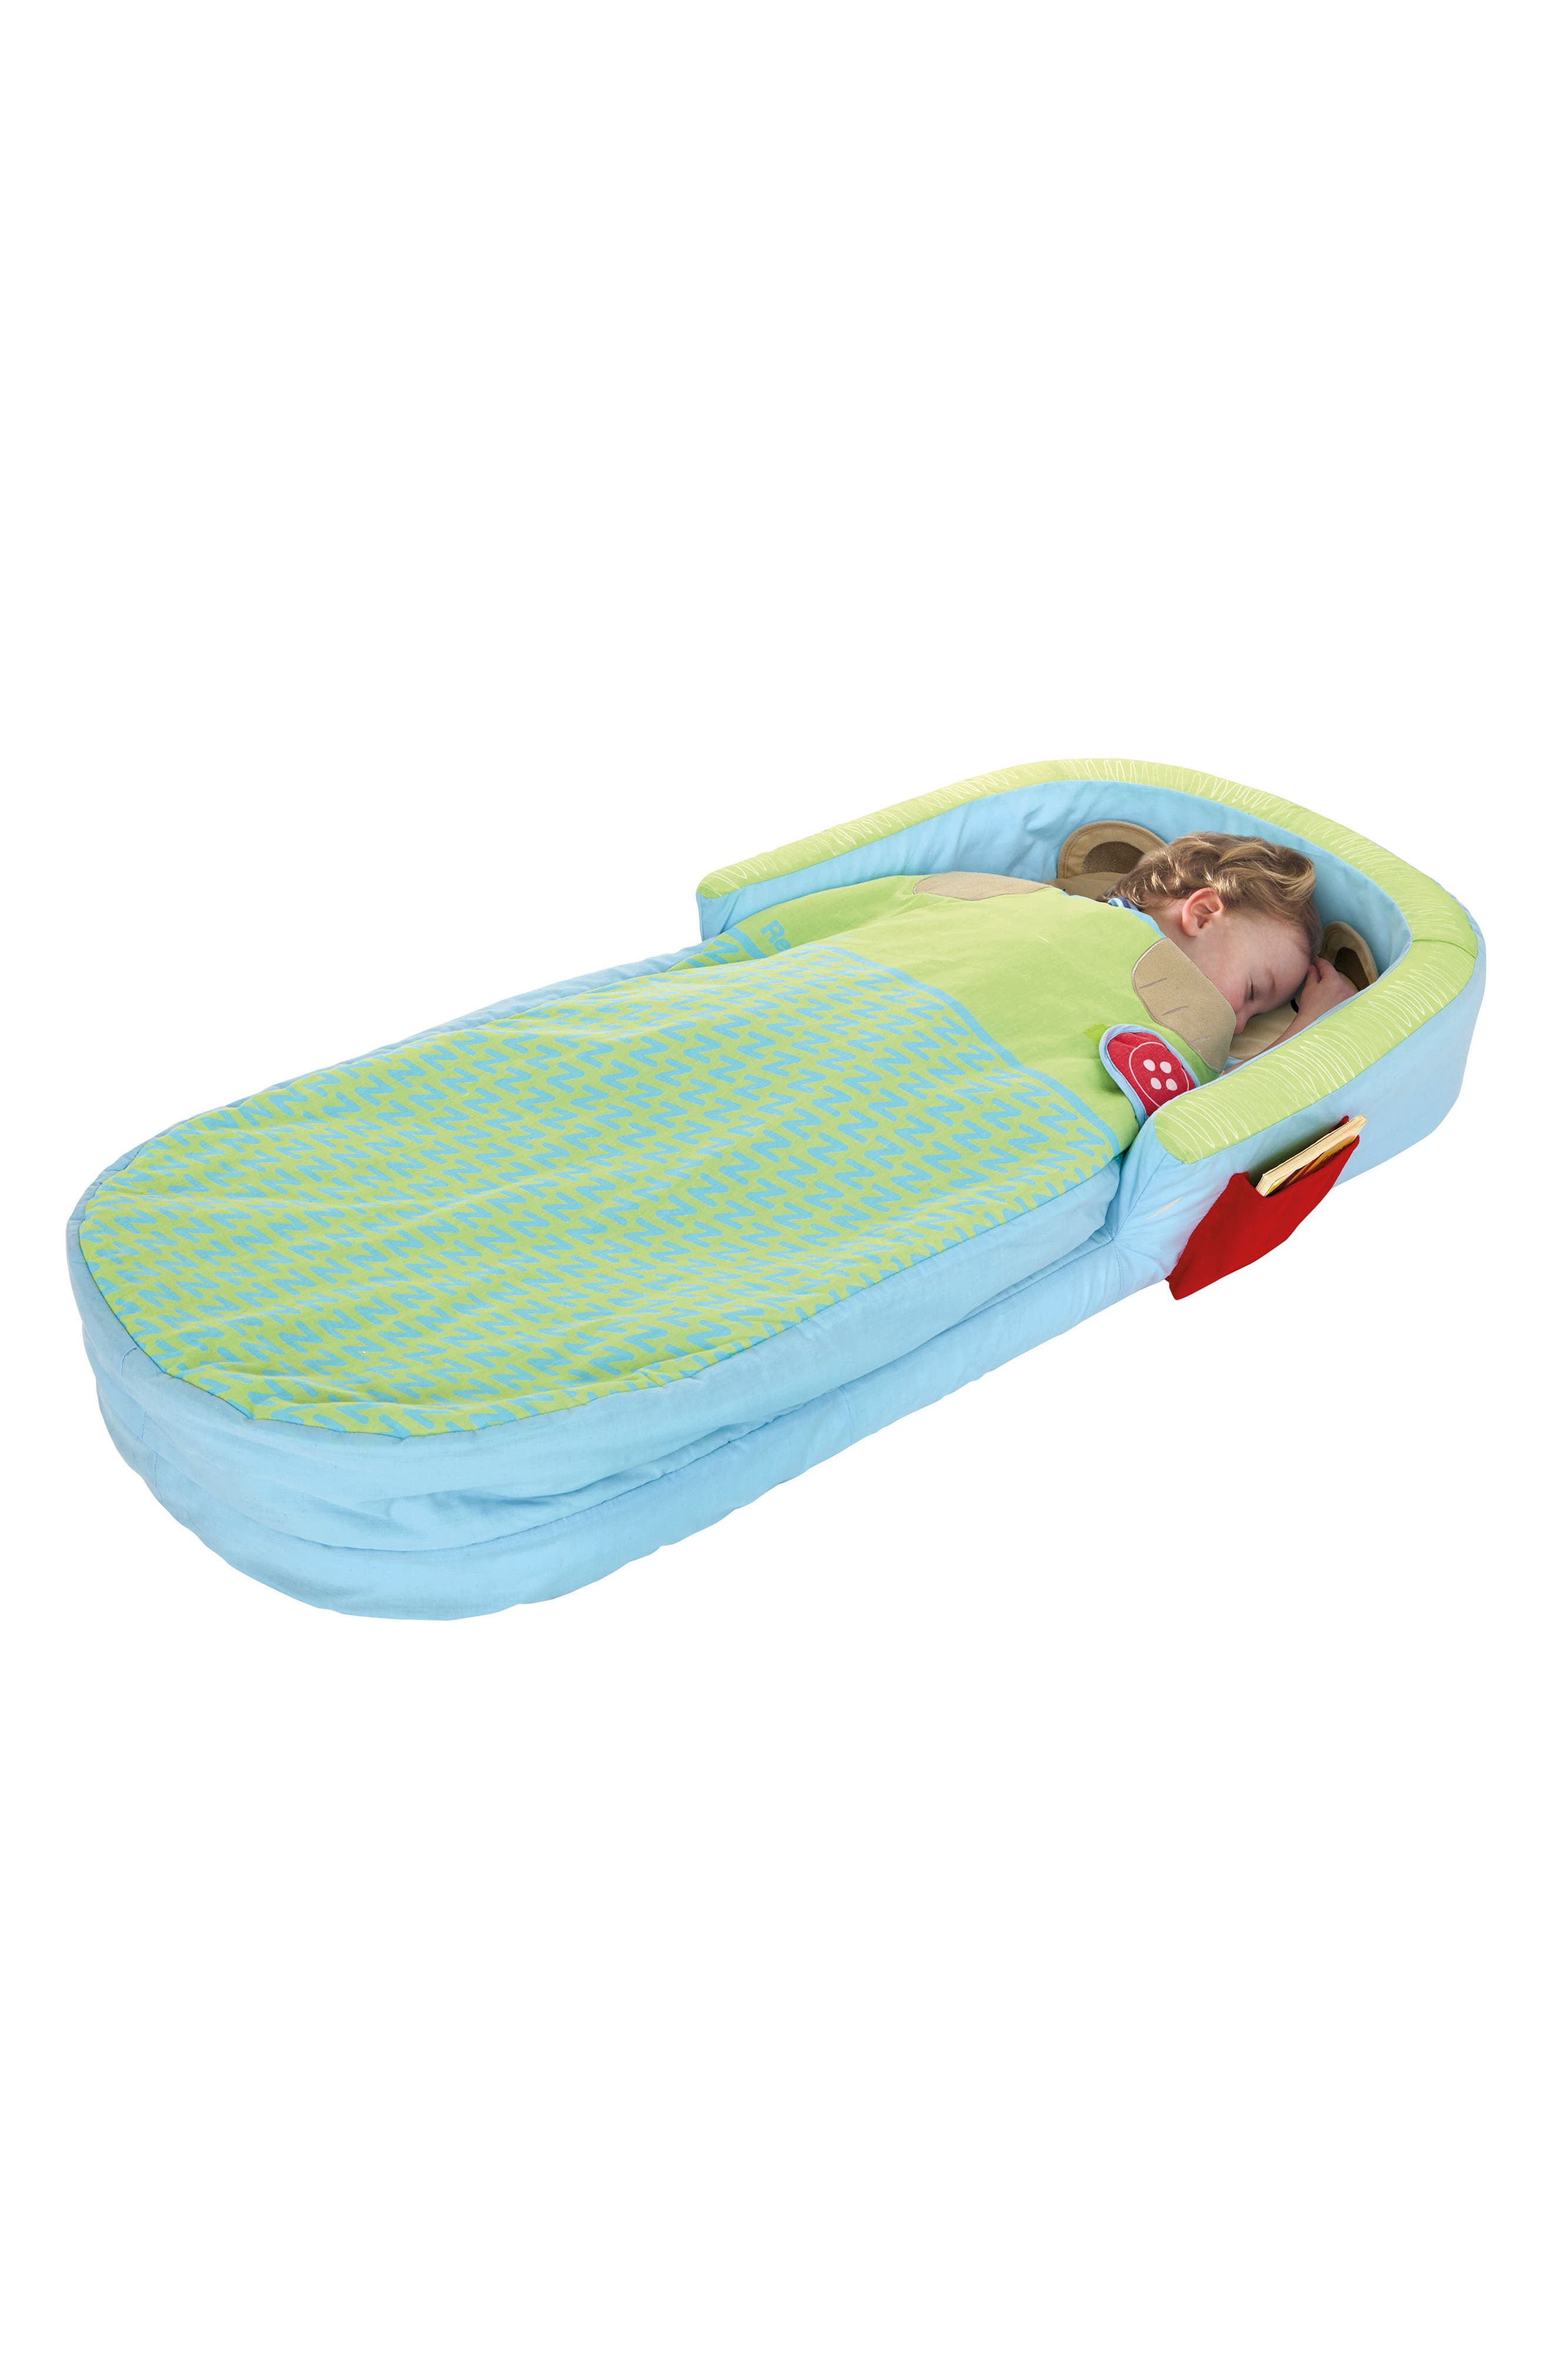 Bear Hug My First Ready Bed Inflatable Bed & Cover Set,                             Alternate thumbnail 4, color,                             400